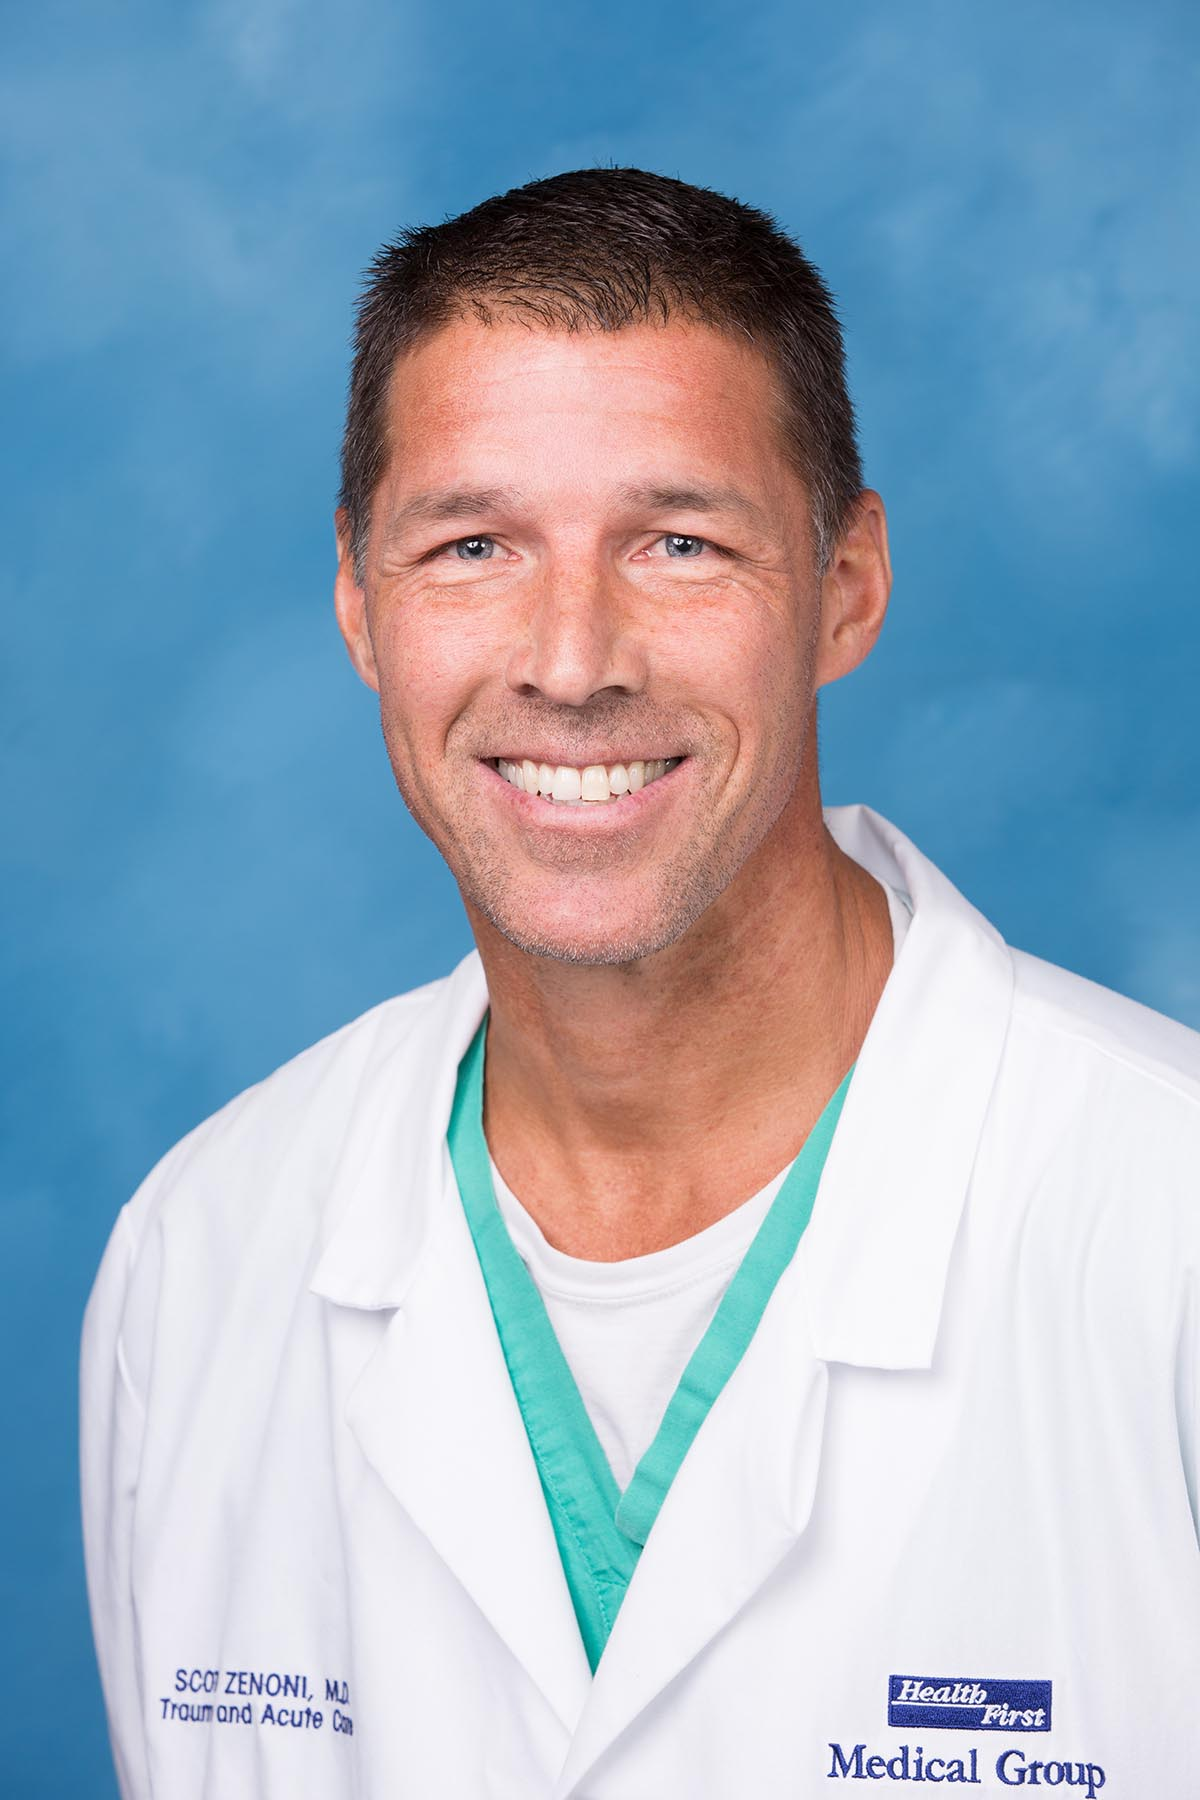 Scott A. Zenoni, MD